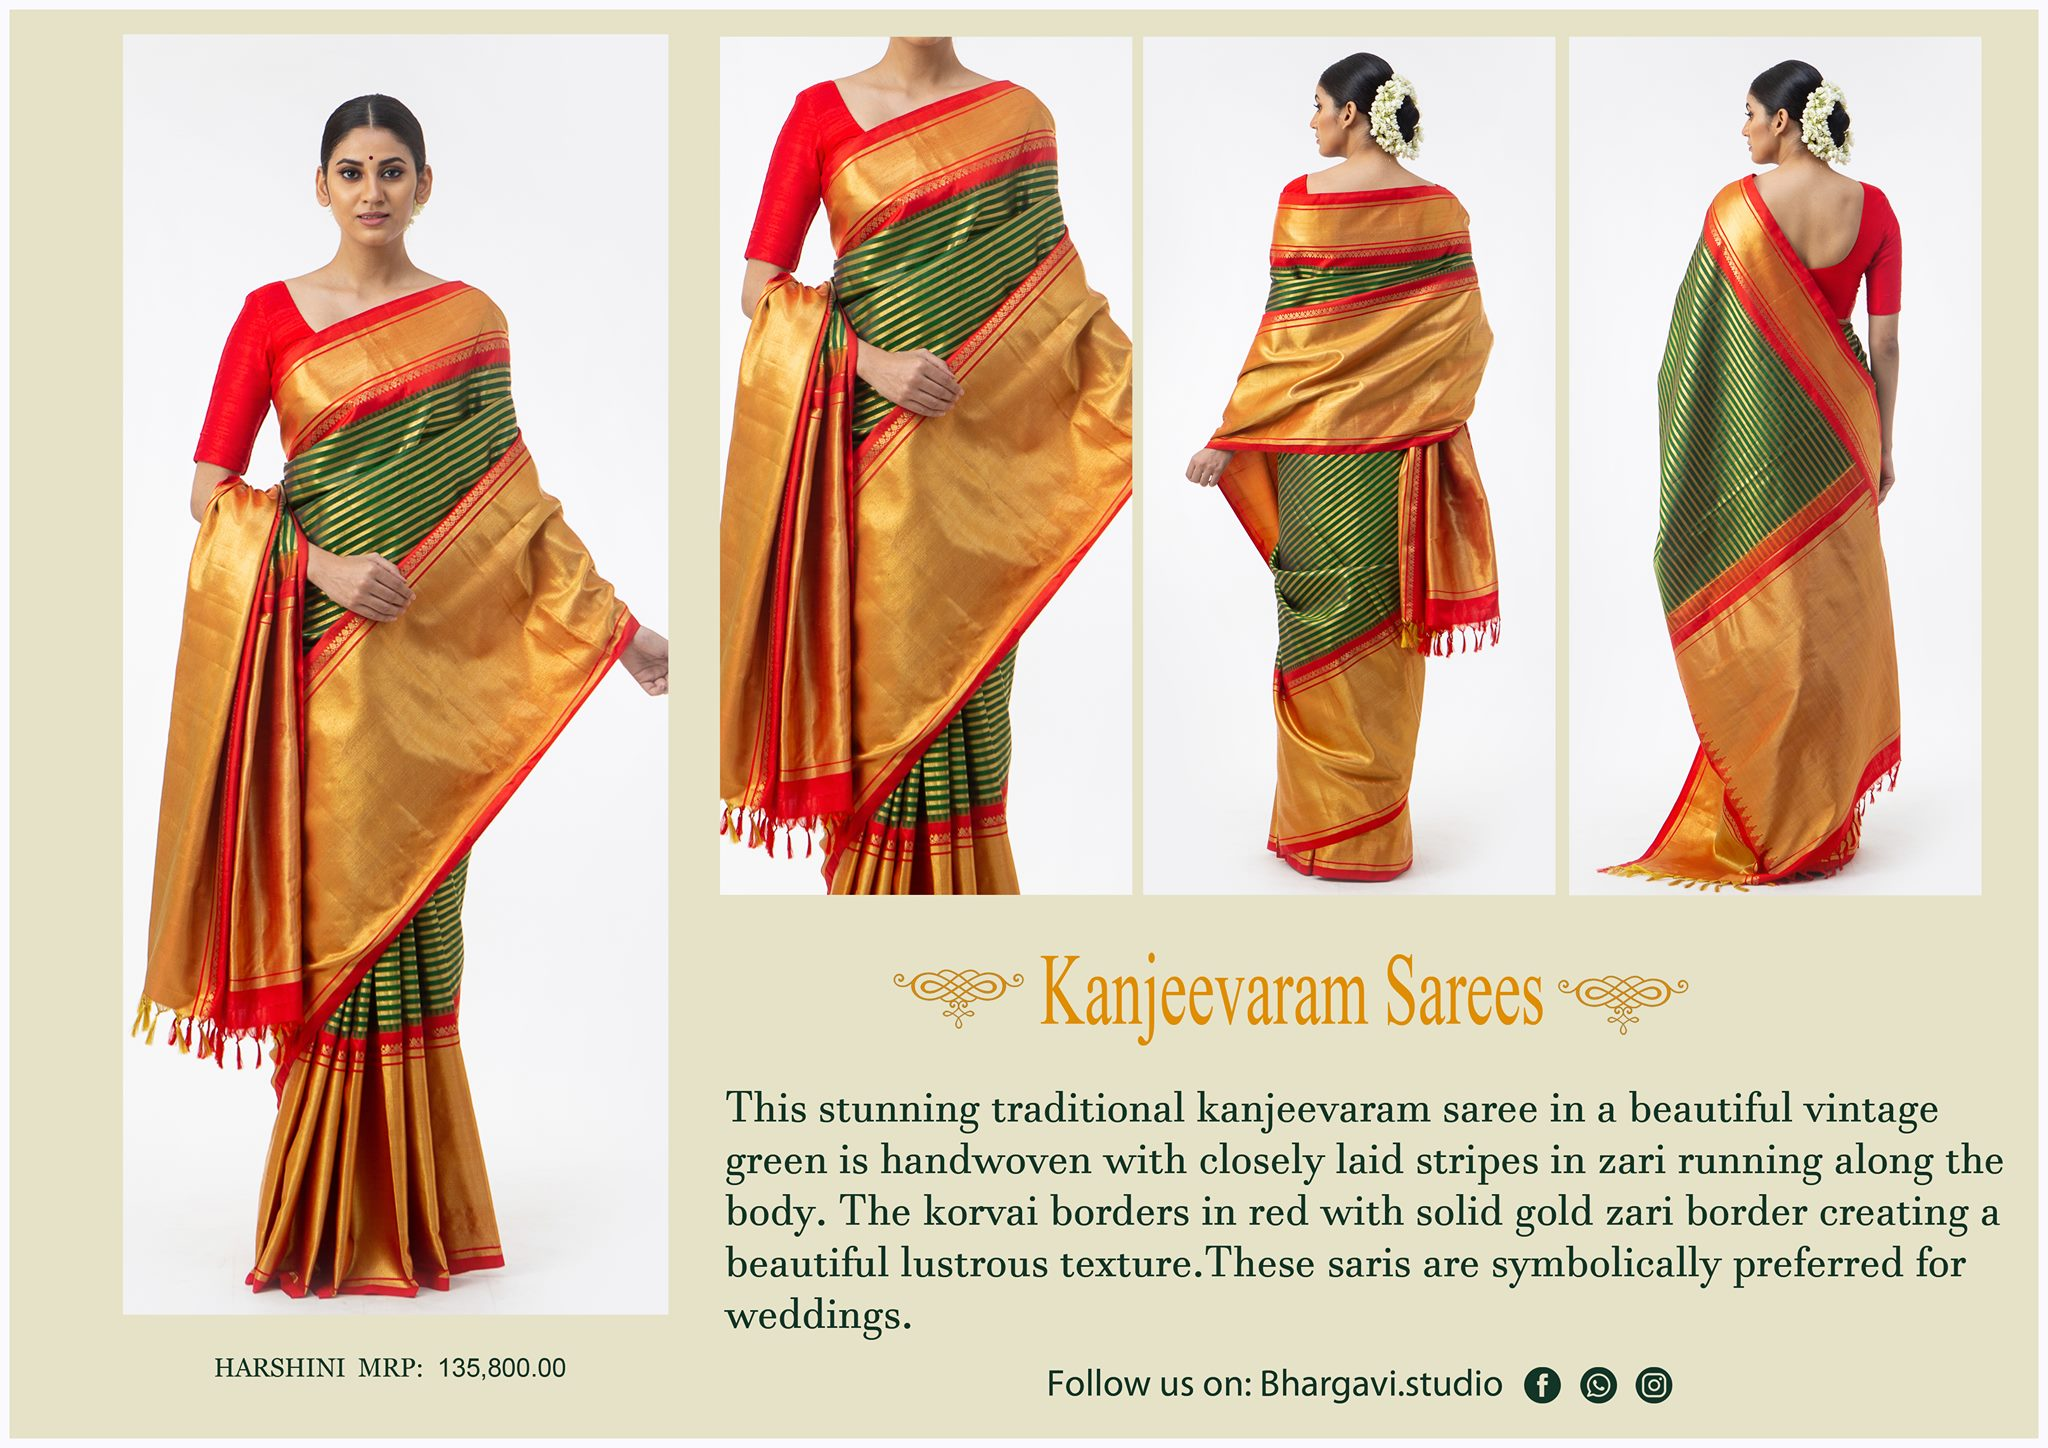 This stunning traditional kanjeevaram saree in a beautiful vintage green is hand woven with closely laid stripes in zari running along the body. The korvai borders red with solid gold zari boarder. 2021-05-04